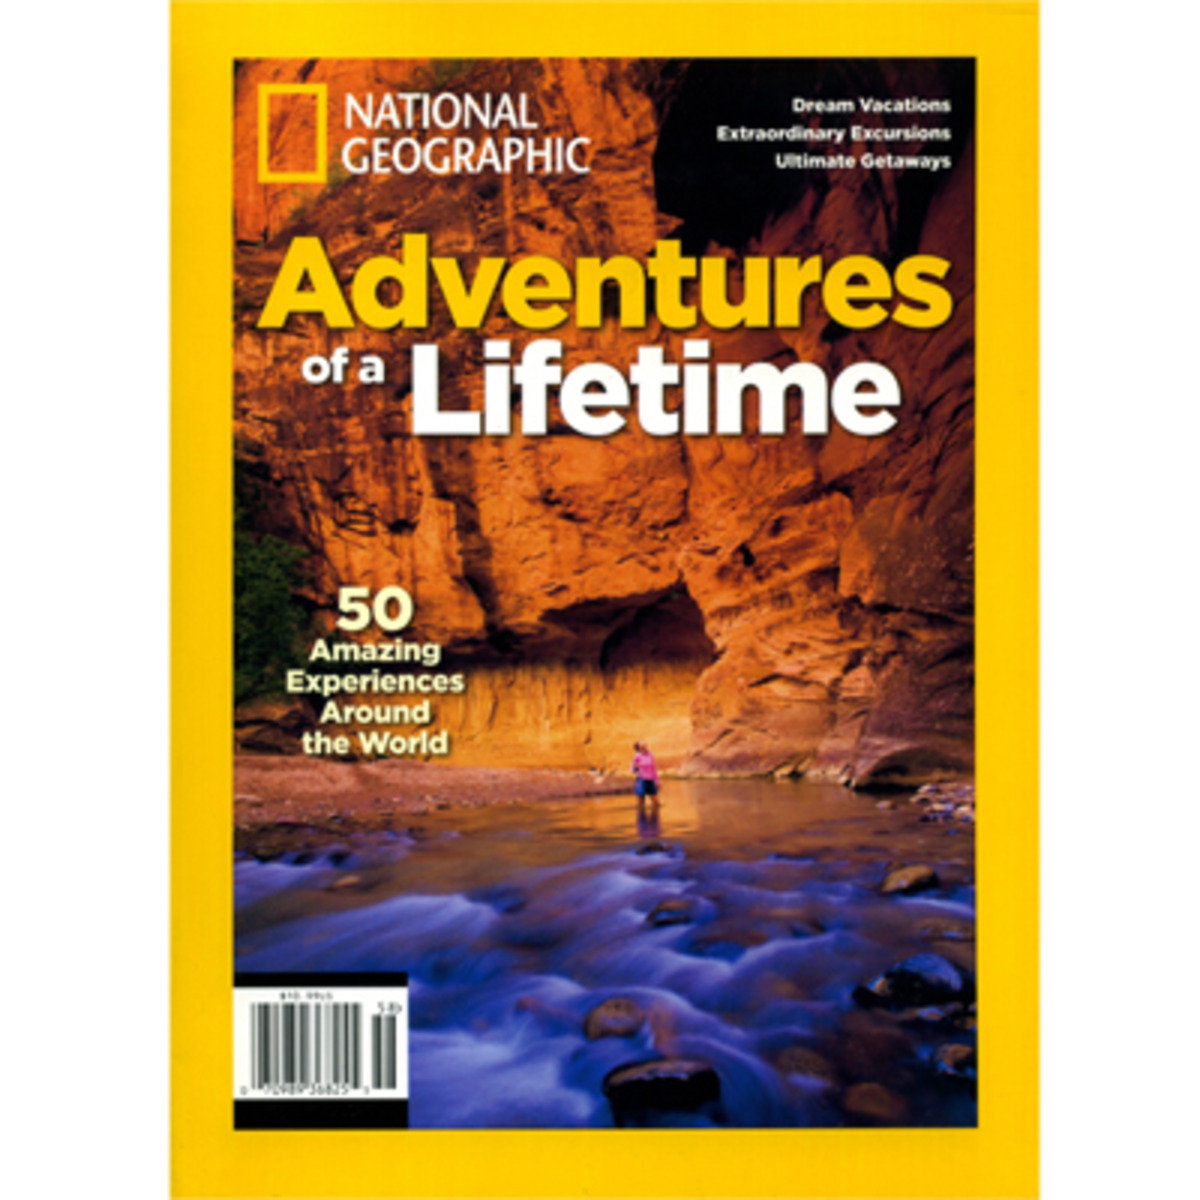 Adventures of a Lifetime: 50 Amazing Experiences Around the World